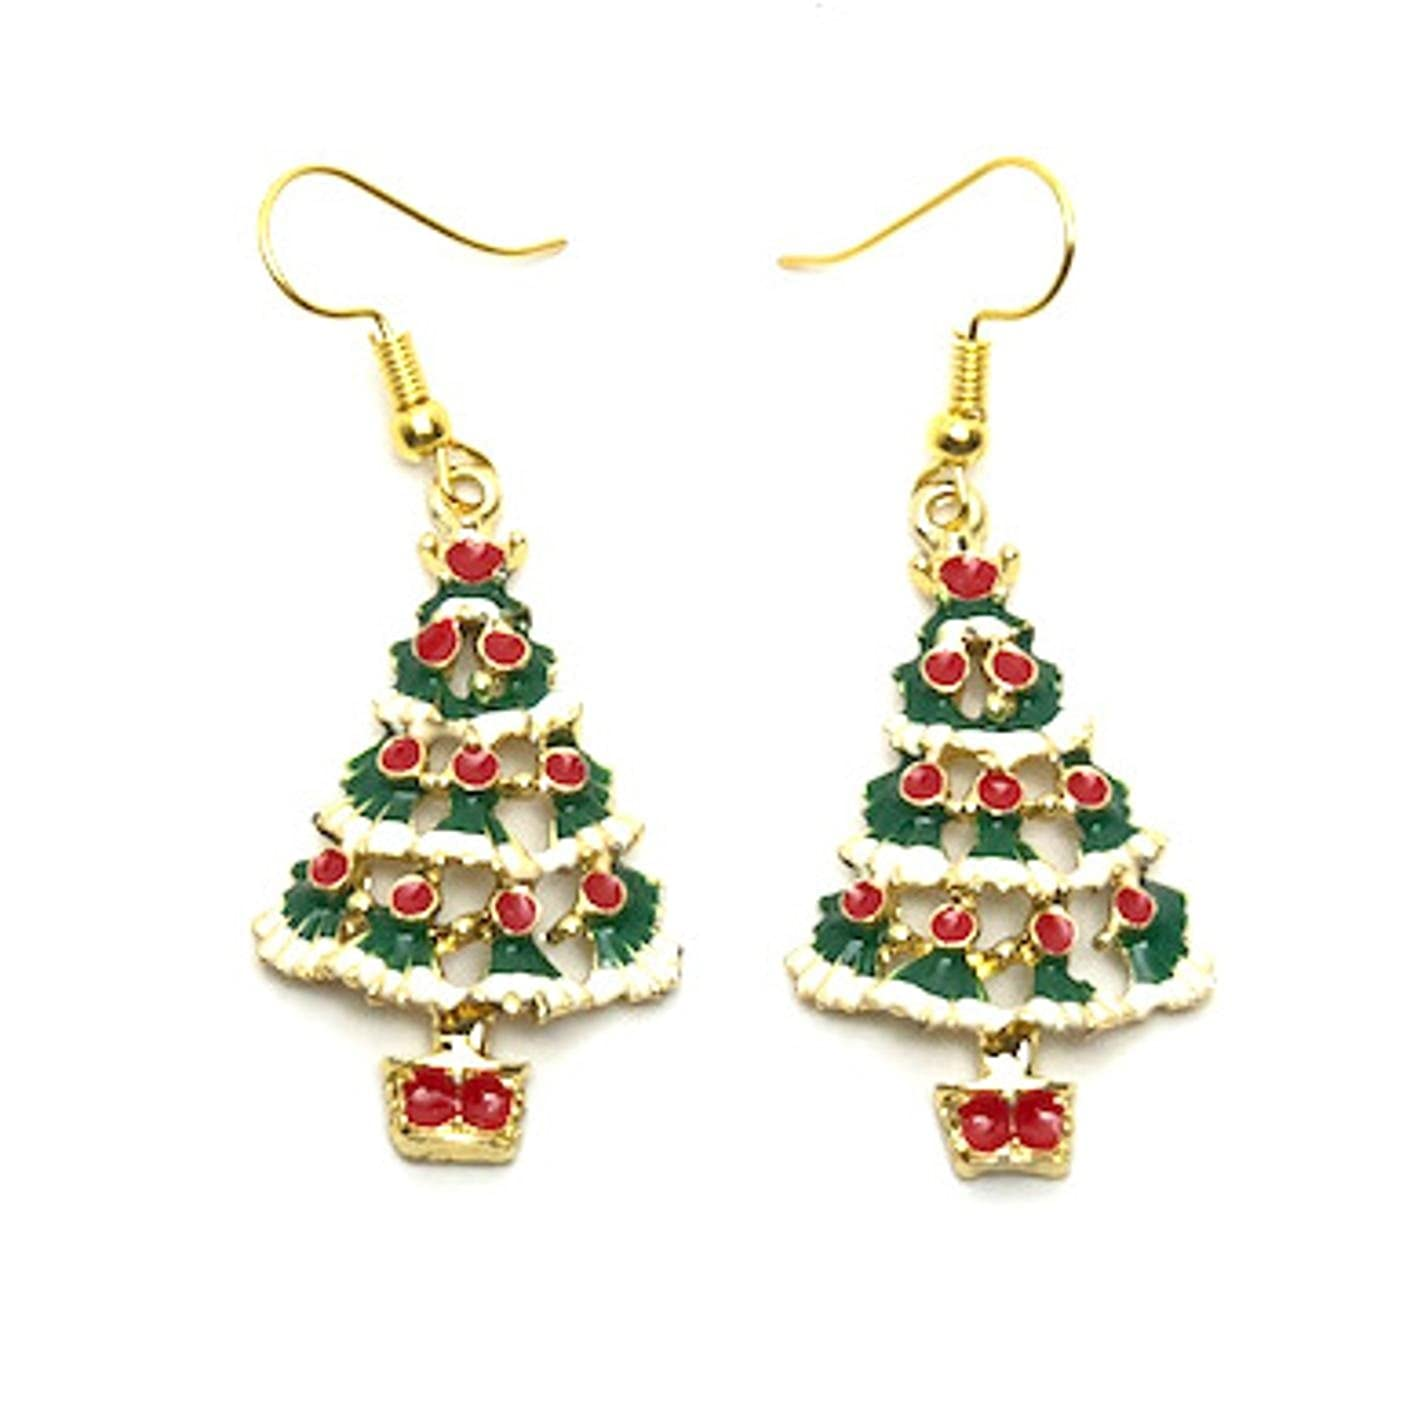 ac7c3ab46 Amazon.com: Christmas : Epoxy Christmas Tree Dangle Fish Hook Earrings For  Women / AZAEXM011-GMU: Jewelry